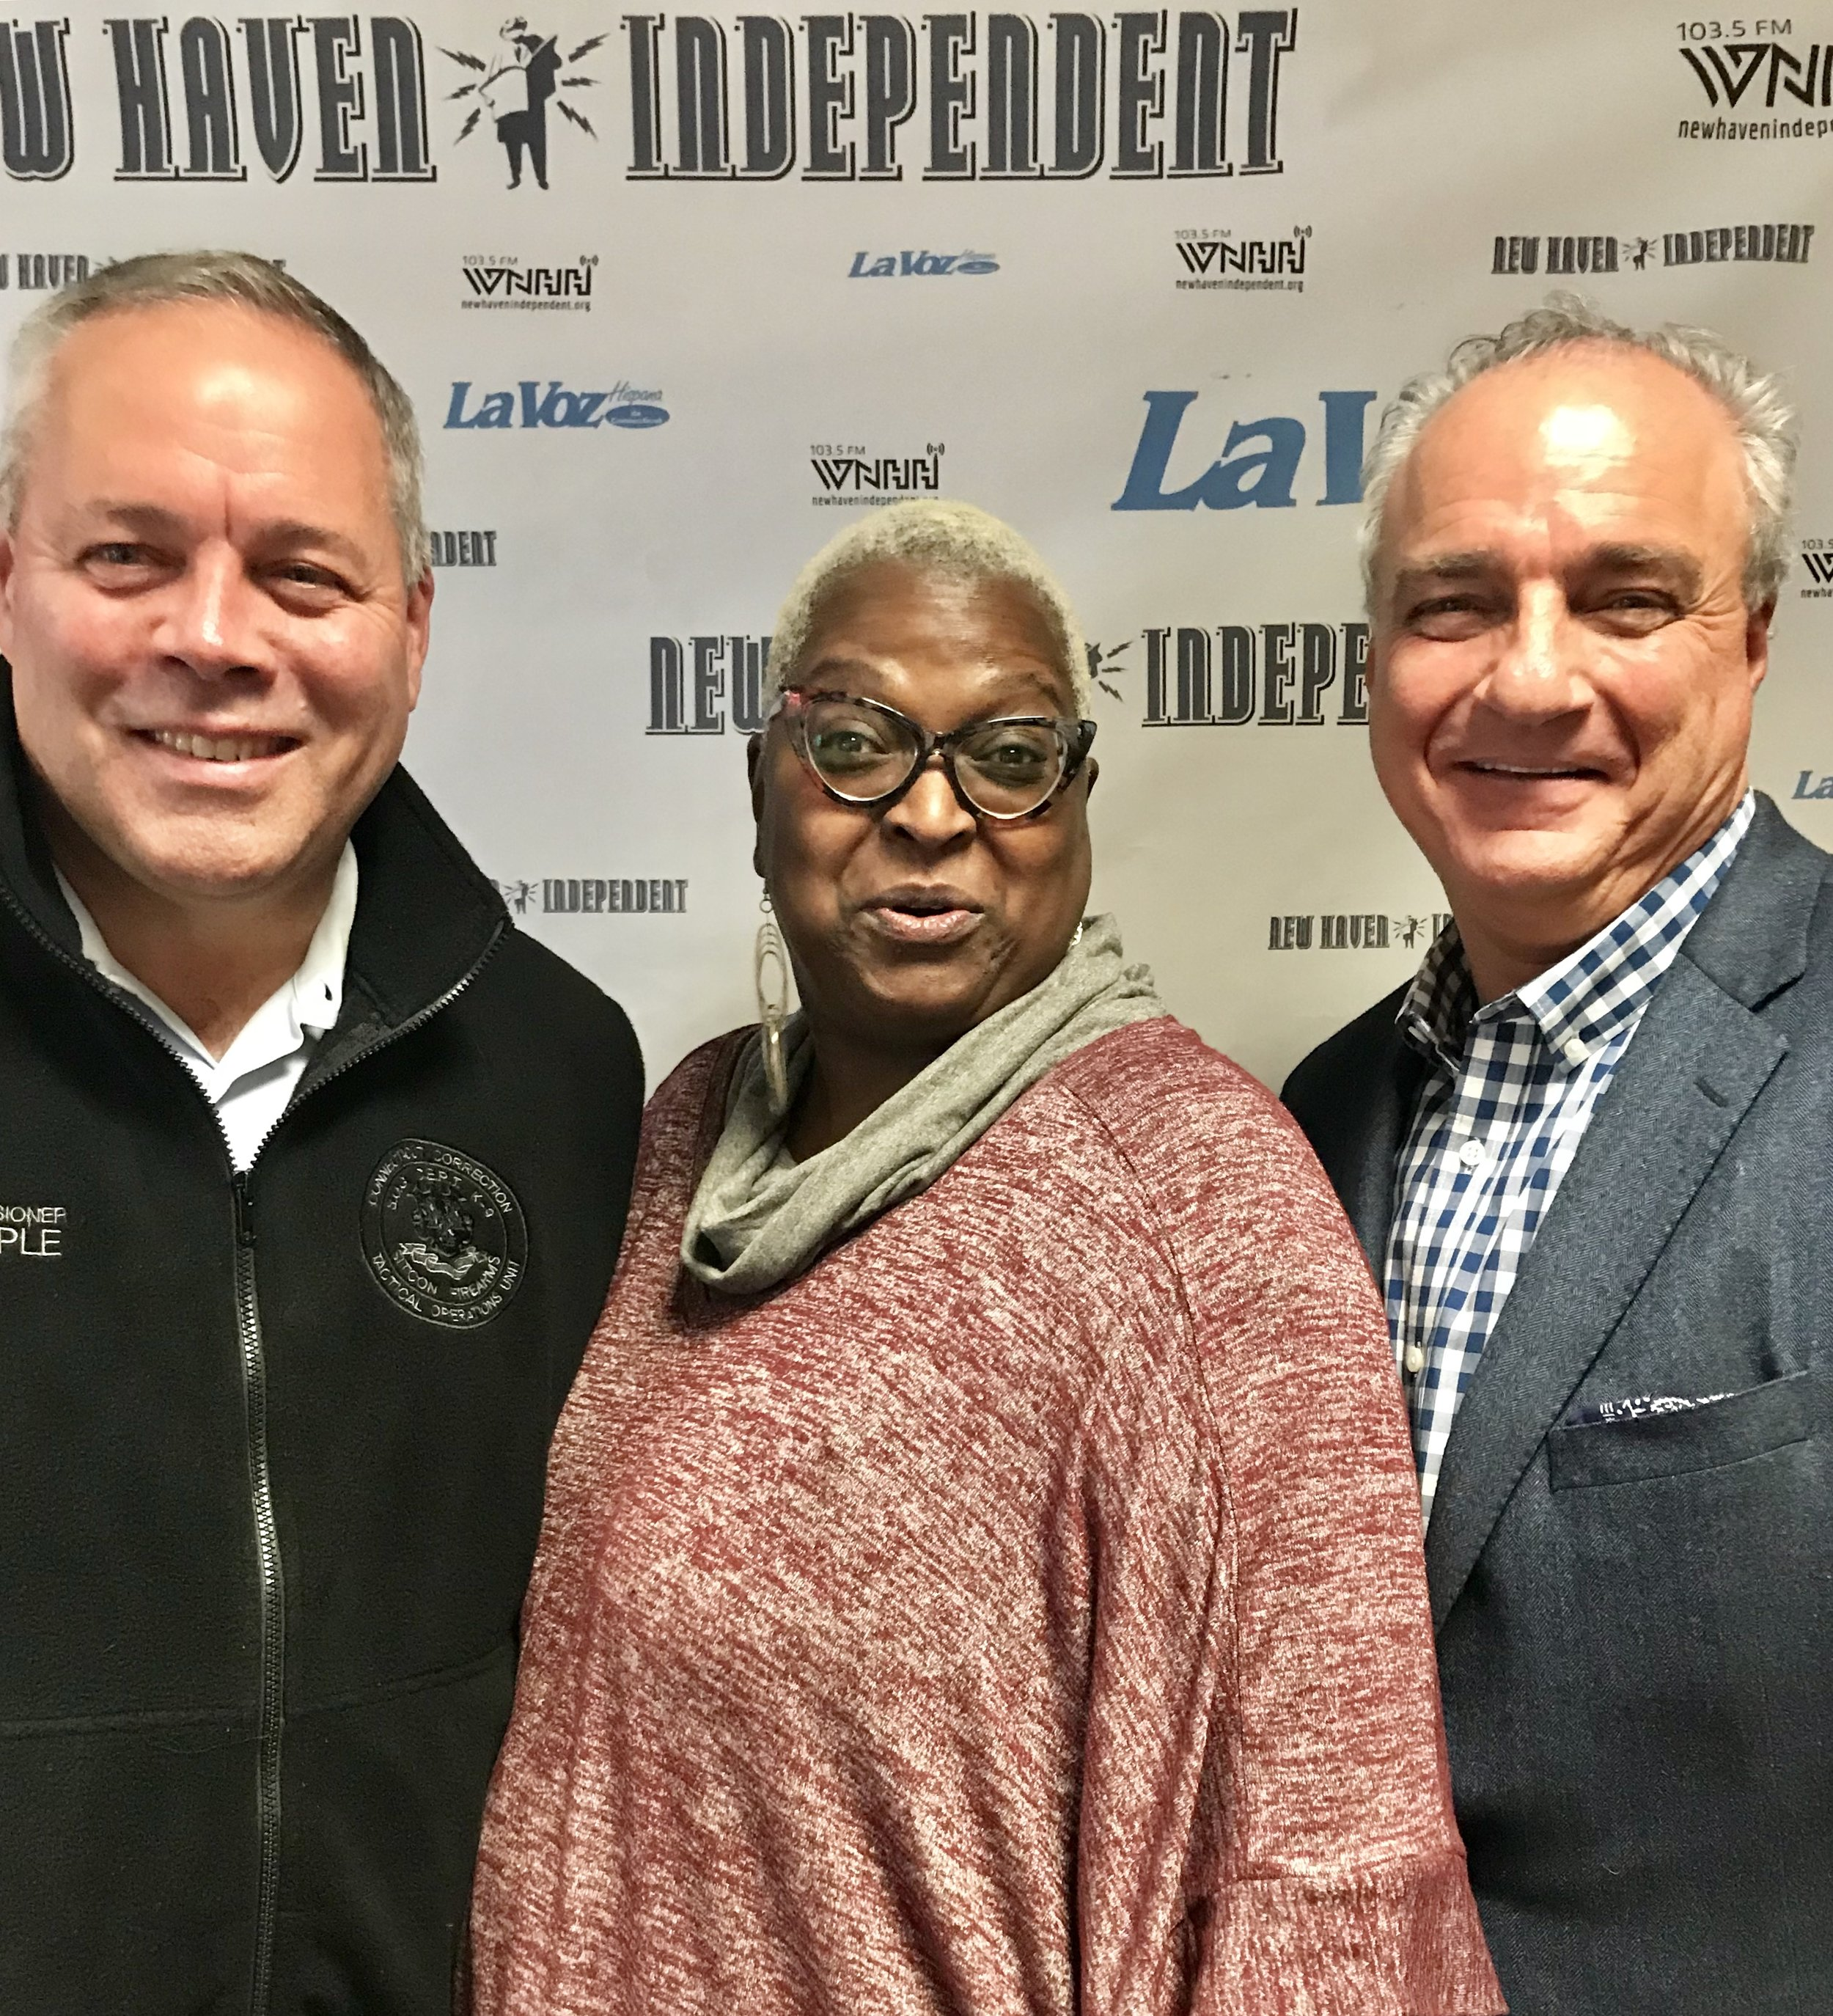 Host Babz Rawls-Ivy & Jeff Grant talk Corrections with Scott Semple, CT Commissioner of Corrections.